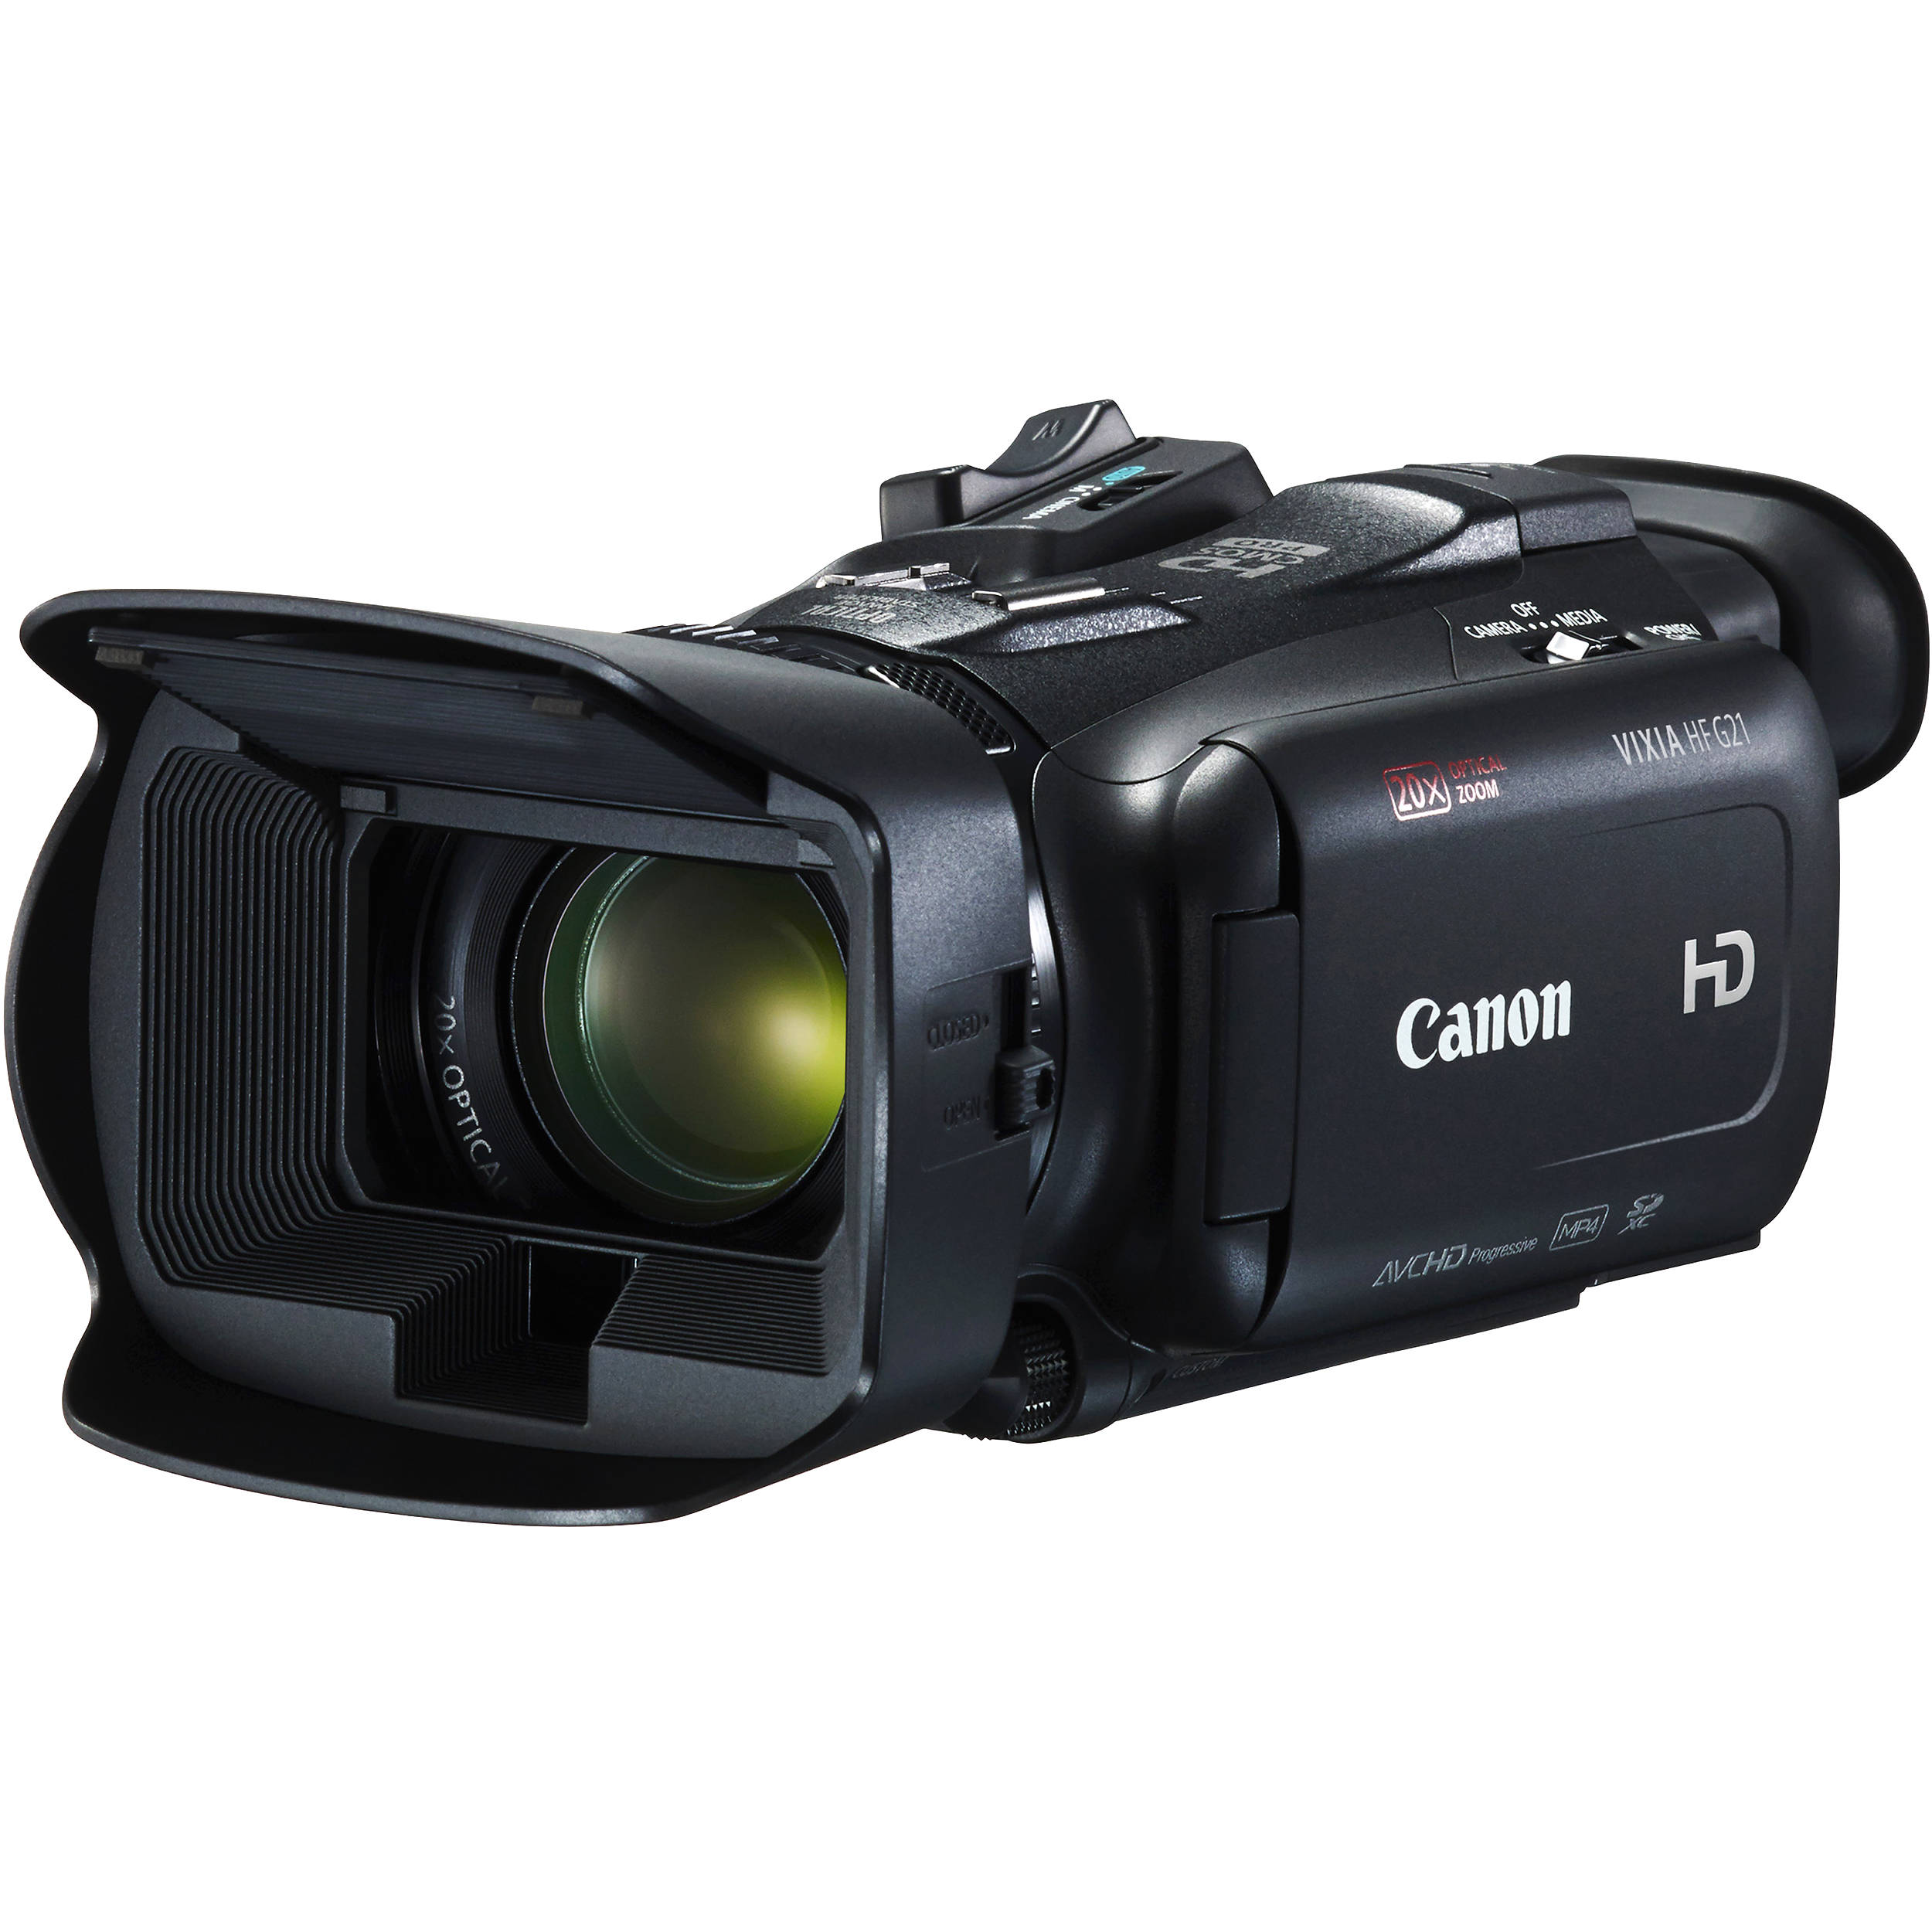 canon vixia hf g21 full hd camcorder 2404c002 b h photo video. Black Bedroom Furniture Sets. Home Design Ideas